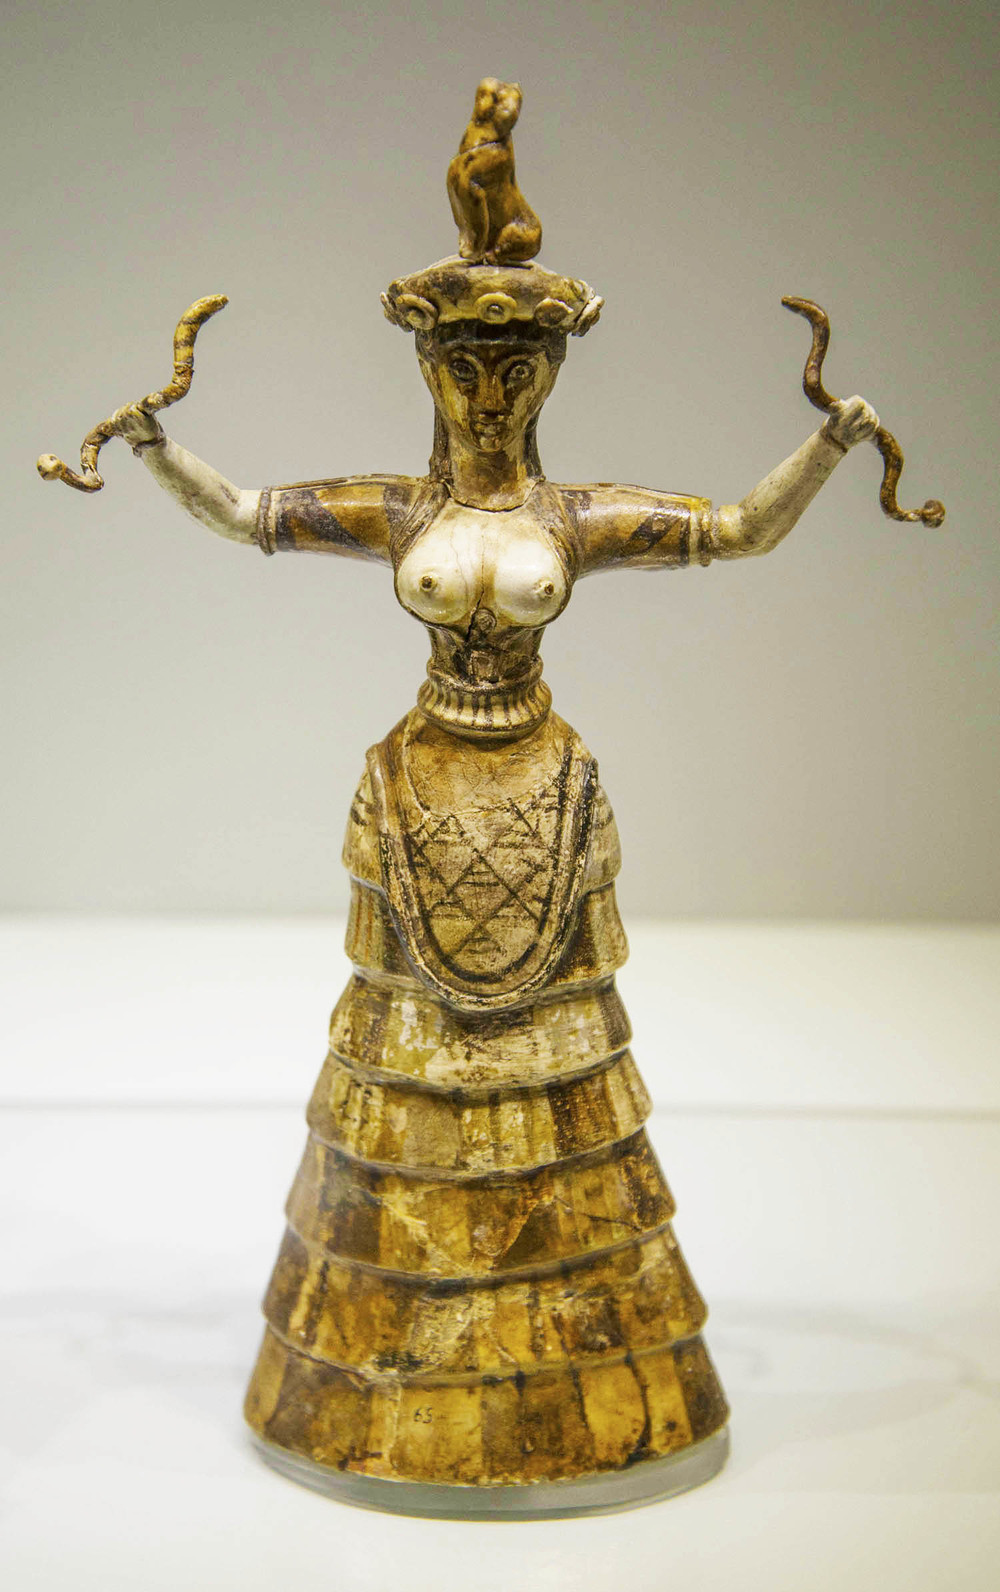 Minoan Snake Goddess, 16th Century BC, Heraklion